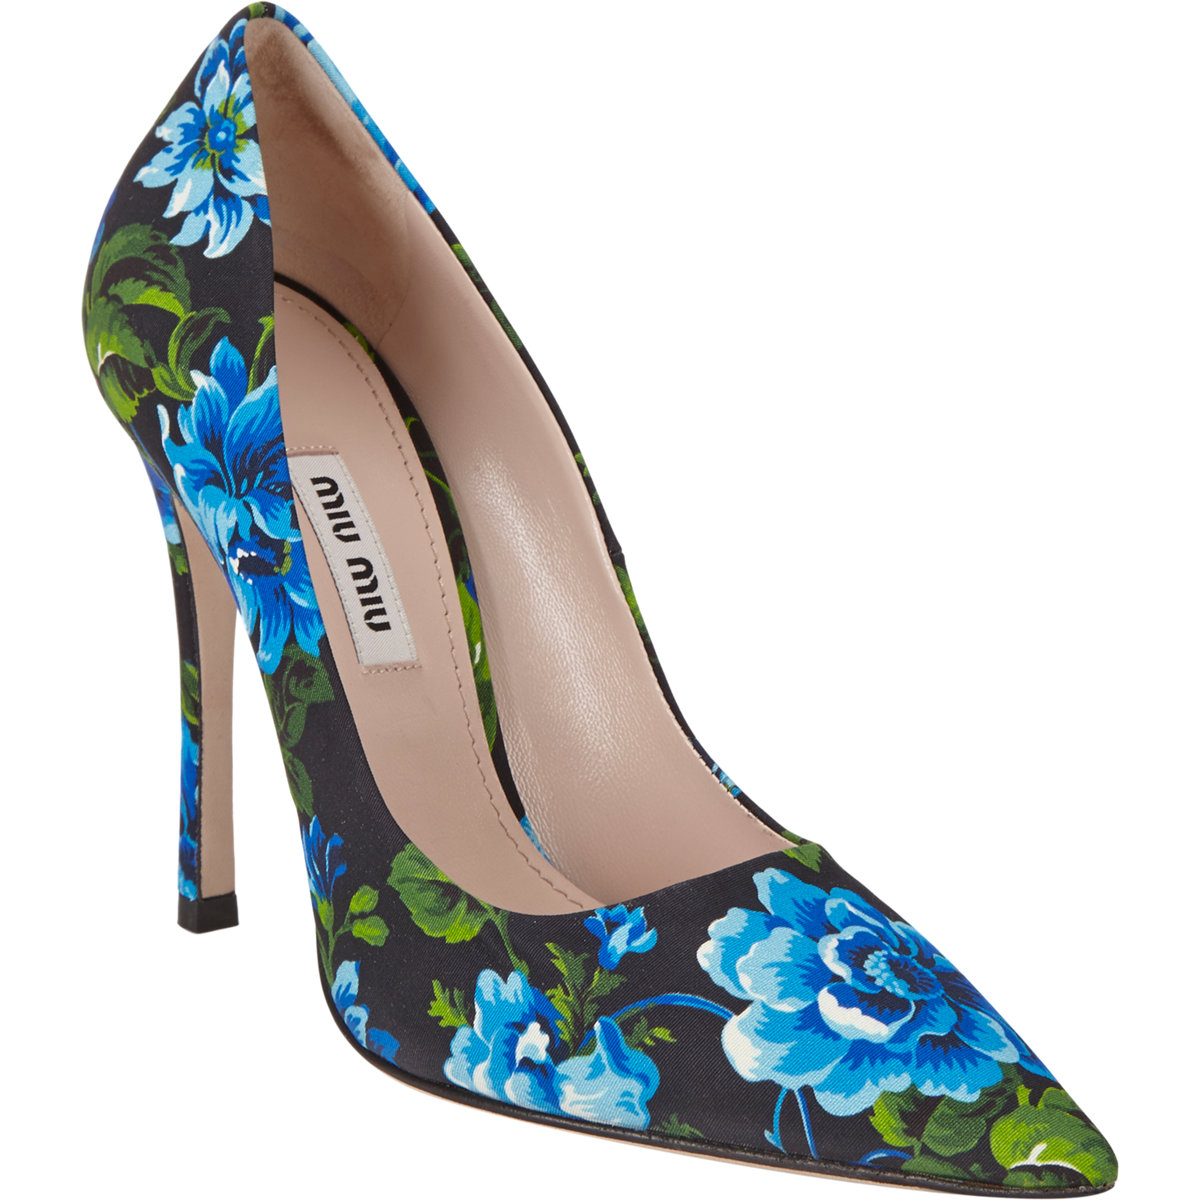 Miu Miu Floral-Print Point-Toe Pumps at Barneys.com